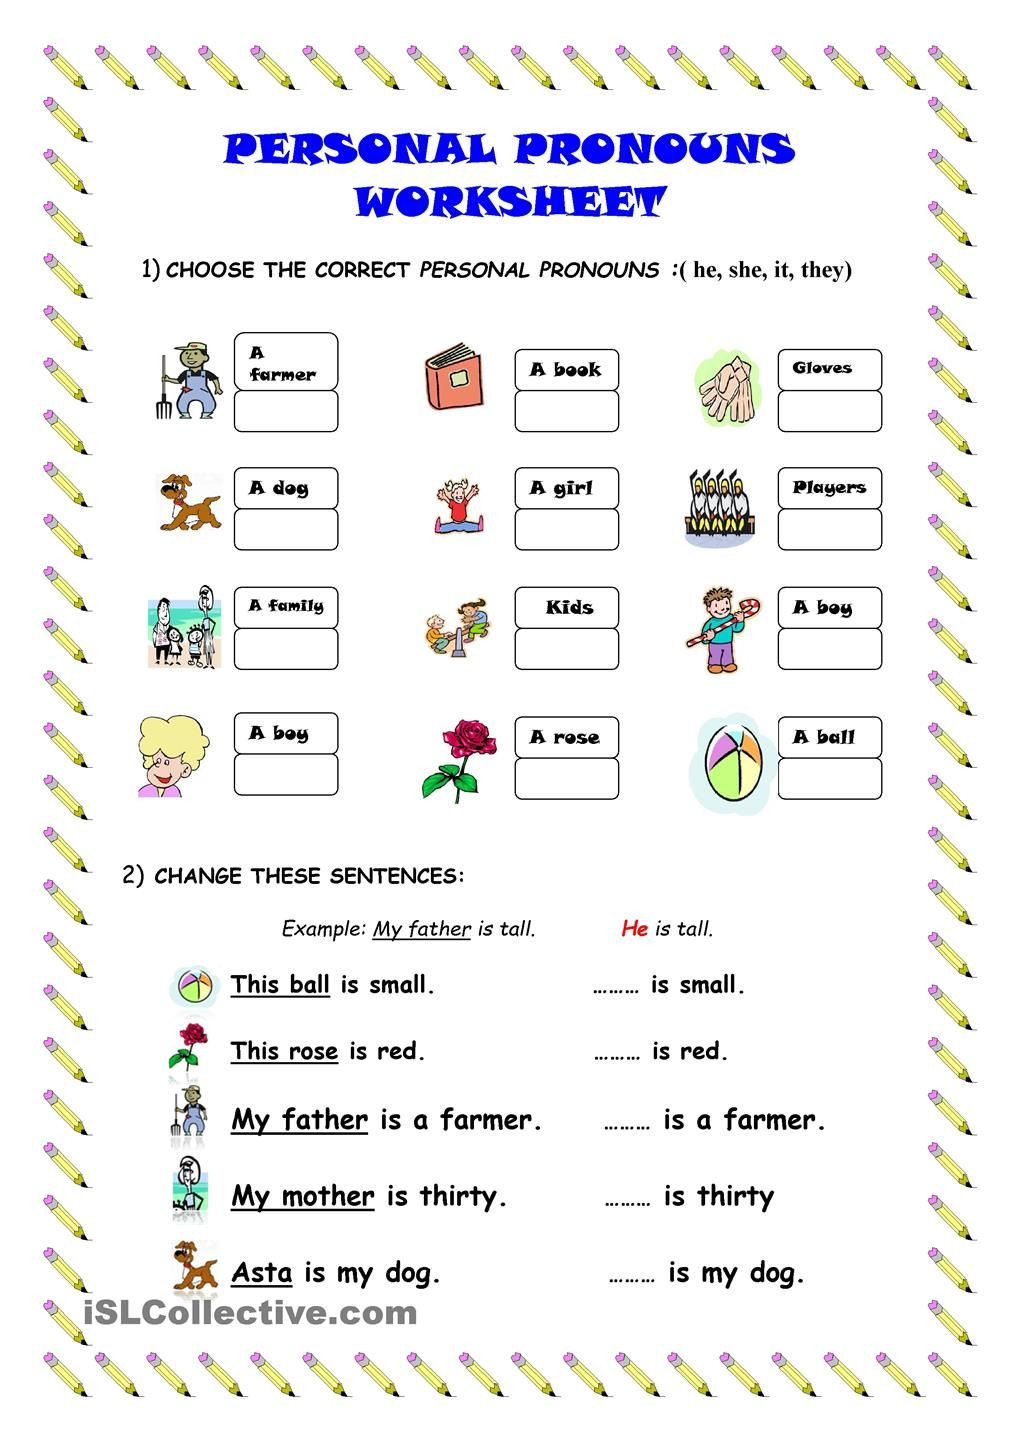 Ordering Decimals Worksheet 5th Grade Personal Pronouns Worksheet Worksheets Learning Christmas